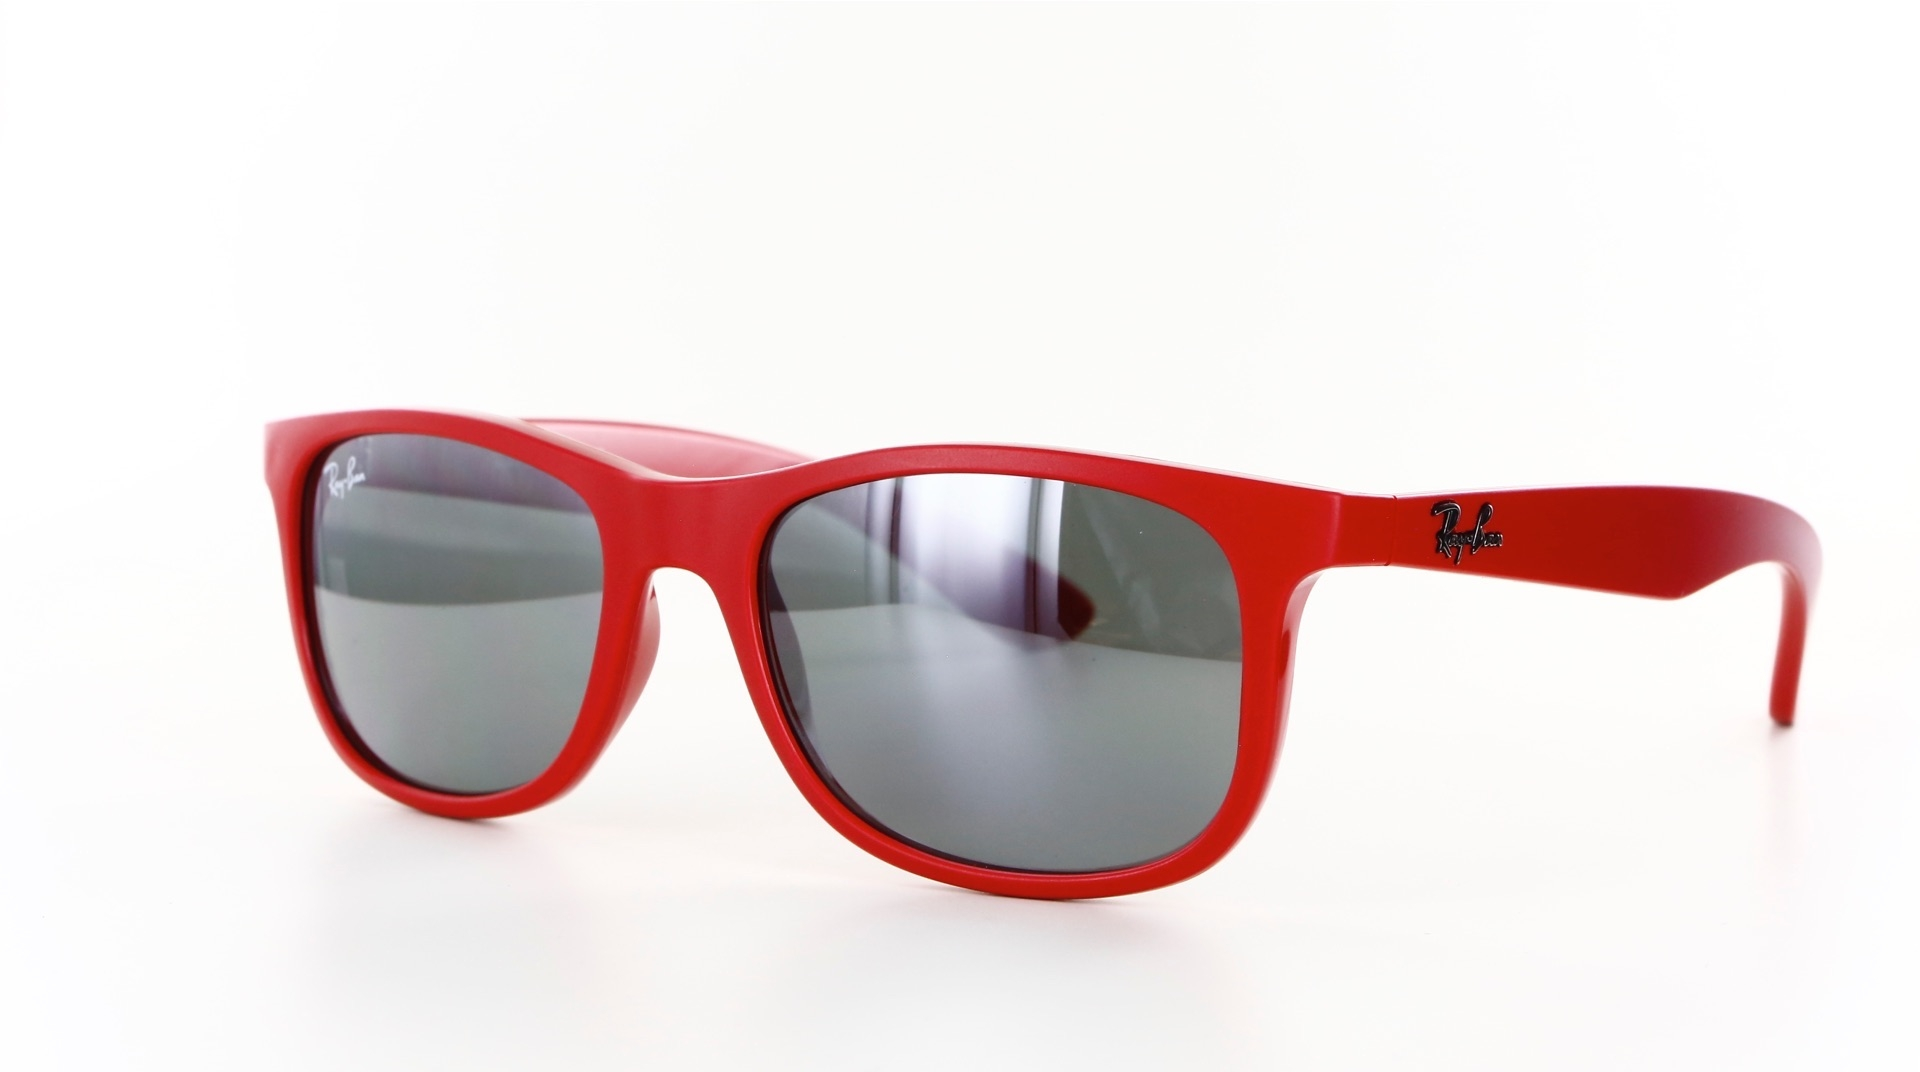 Ray-Ban - ref: 76899